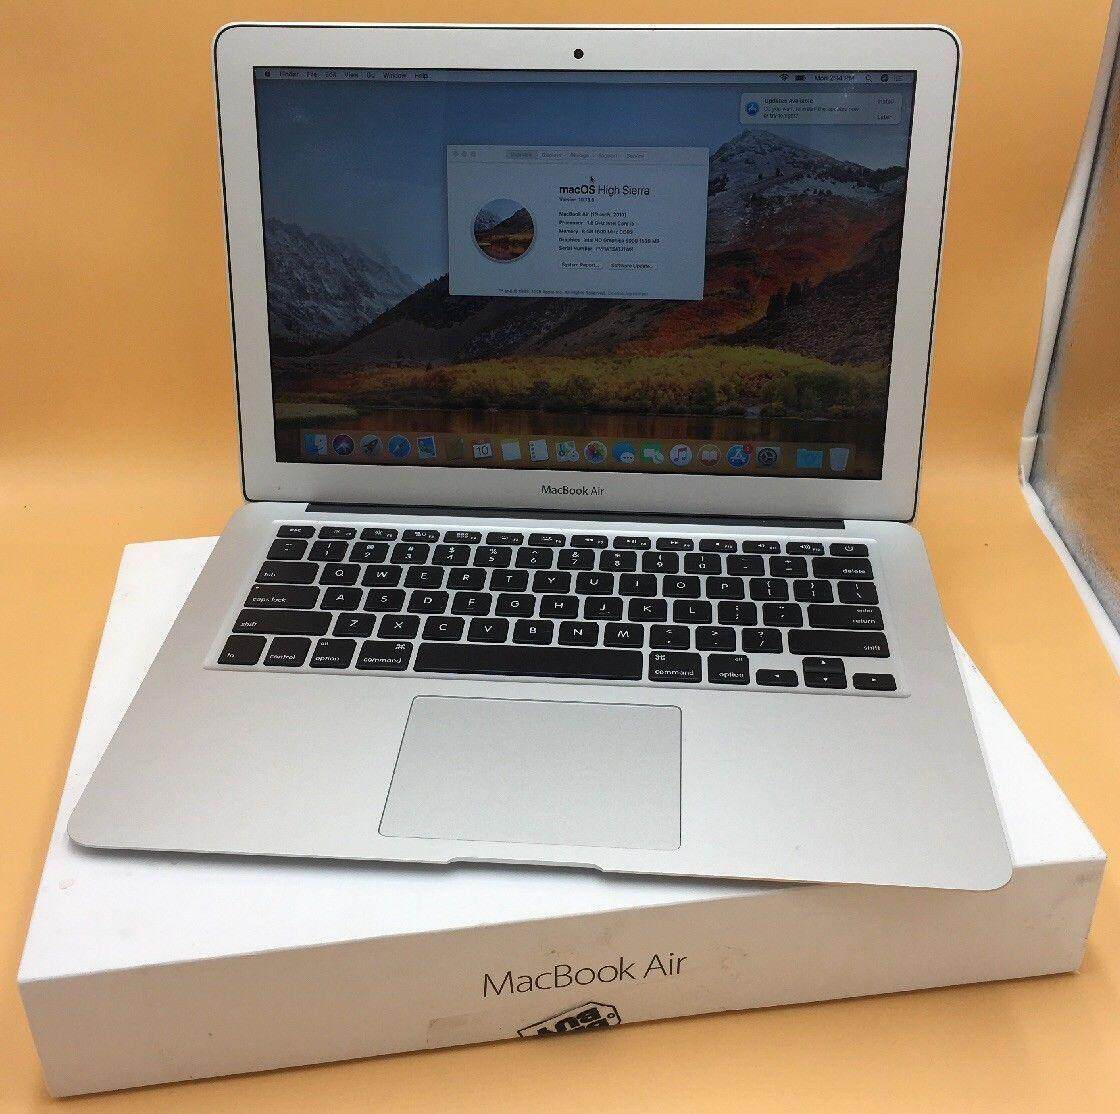 Apple-MacBook Air 13-3-034 Laptop-MQD32LL-A-June 2017 Silver Malaysia